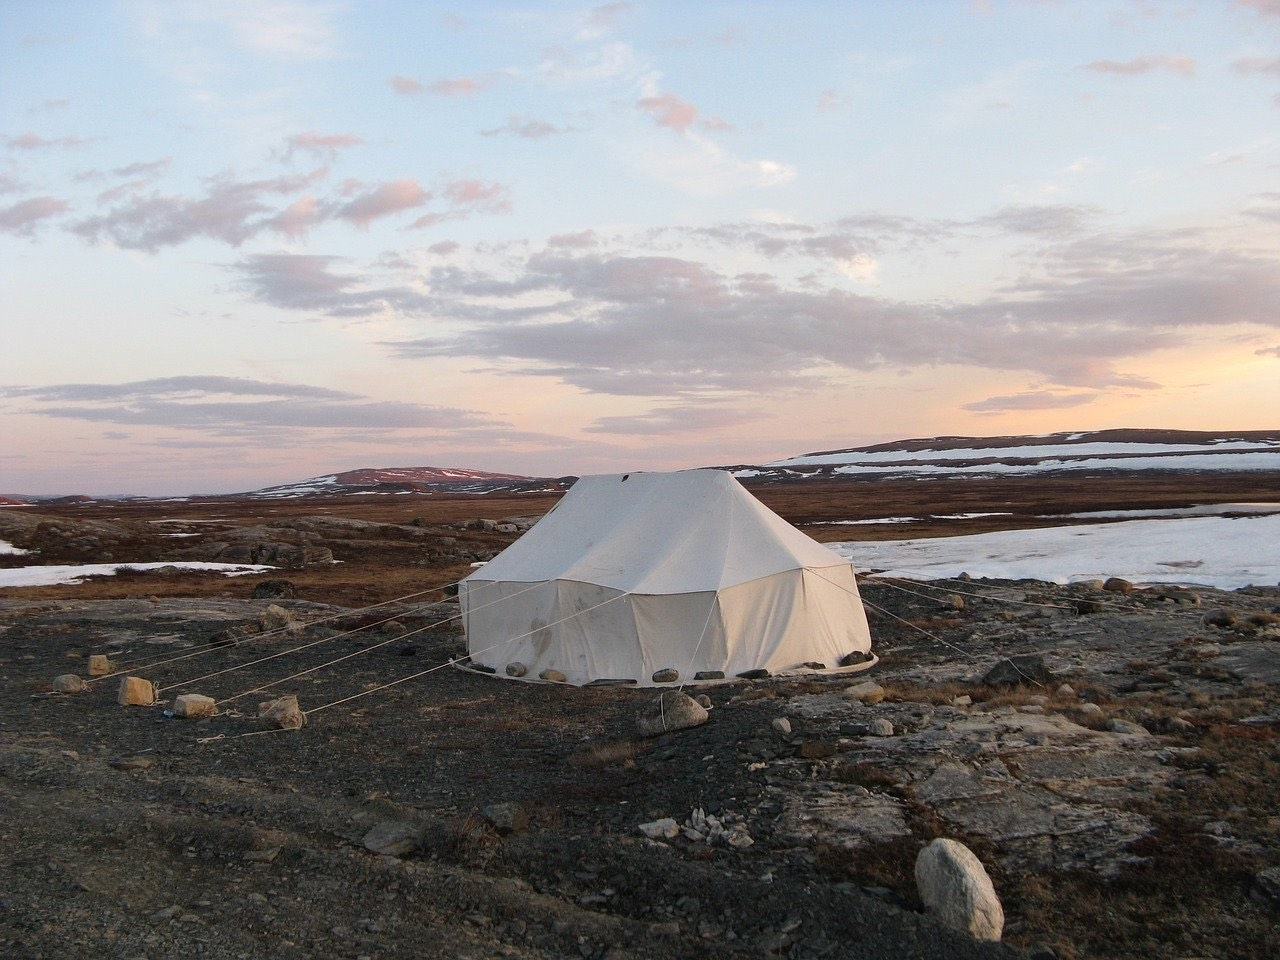 An Inuit tent in the arctic region_PD